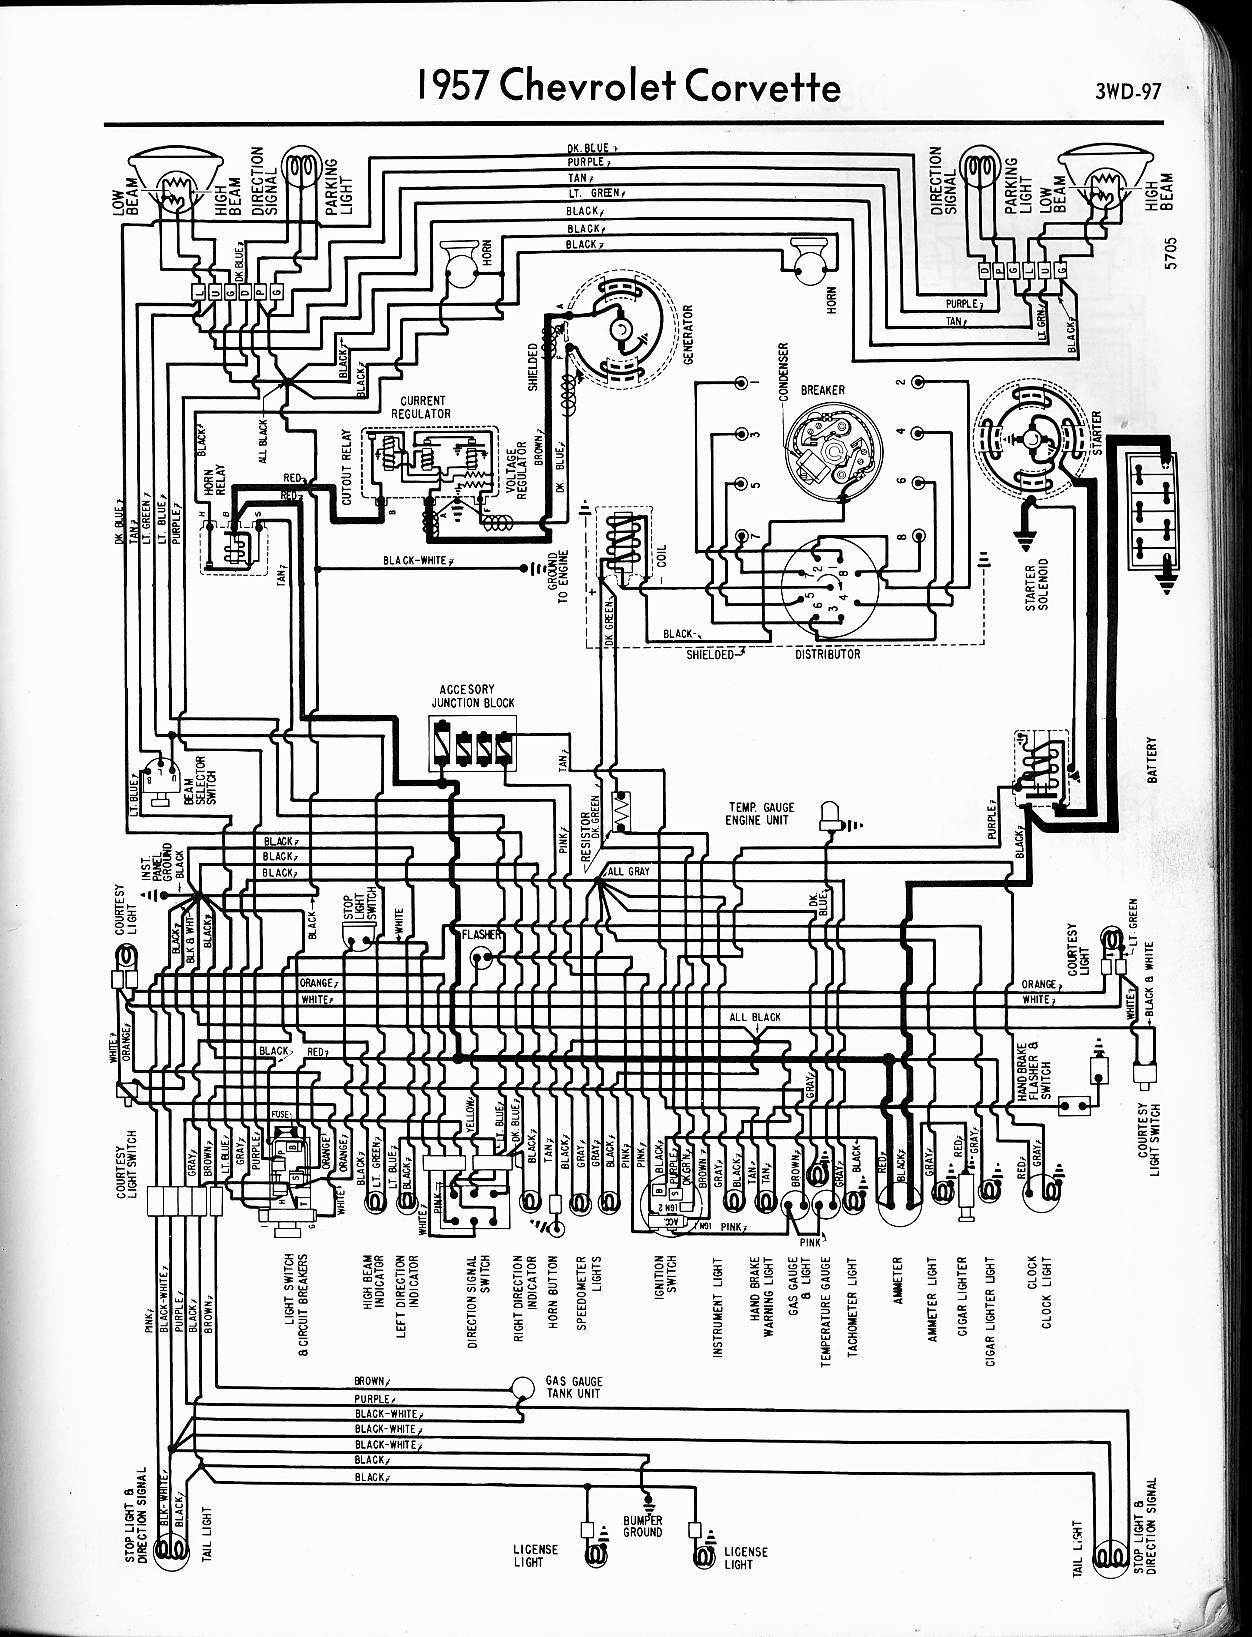 1960 Chevy Truck Wiring Harness Detailed Schematics Diagram 86 Nova 57 65 Diagrams S10